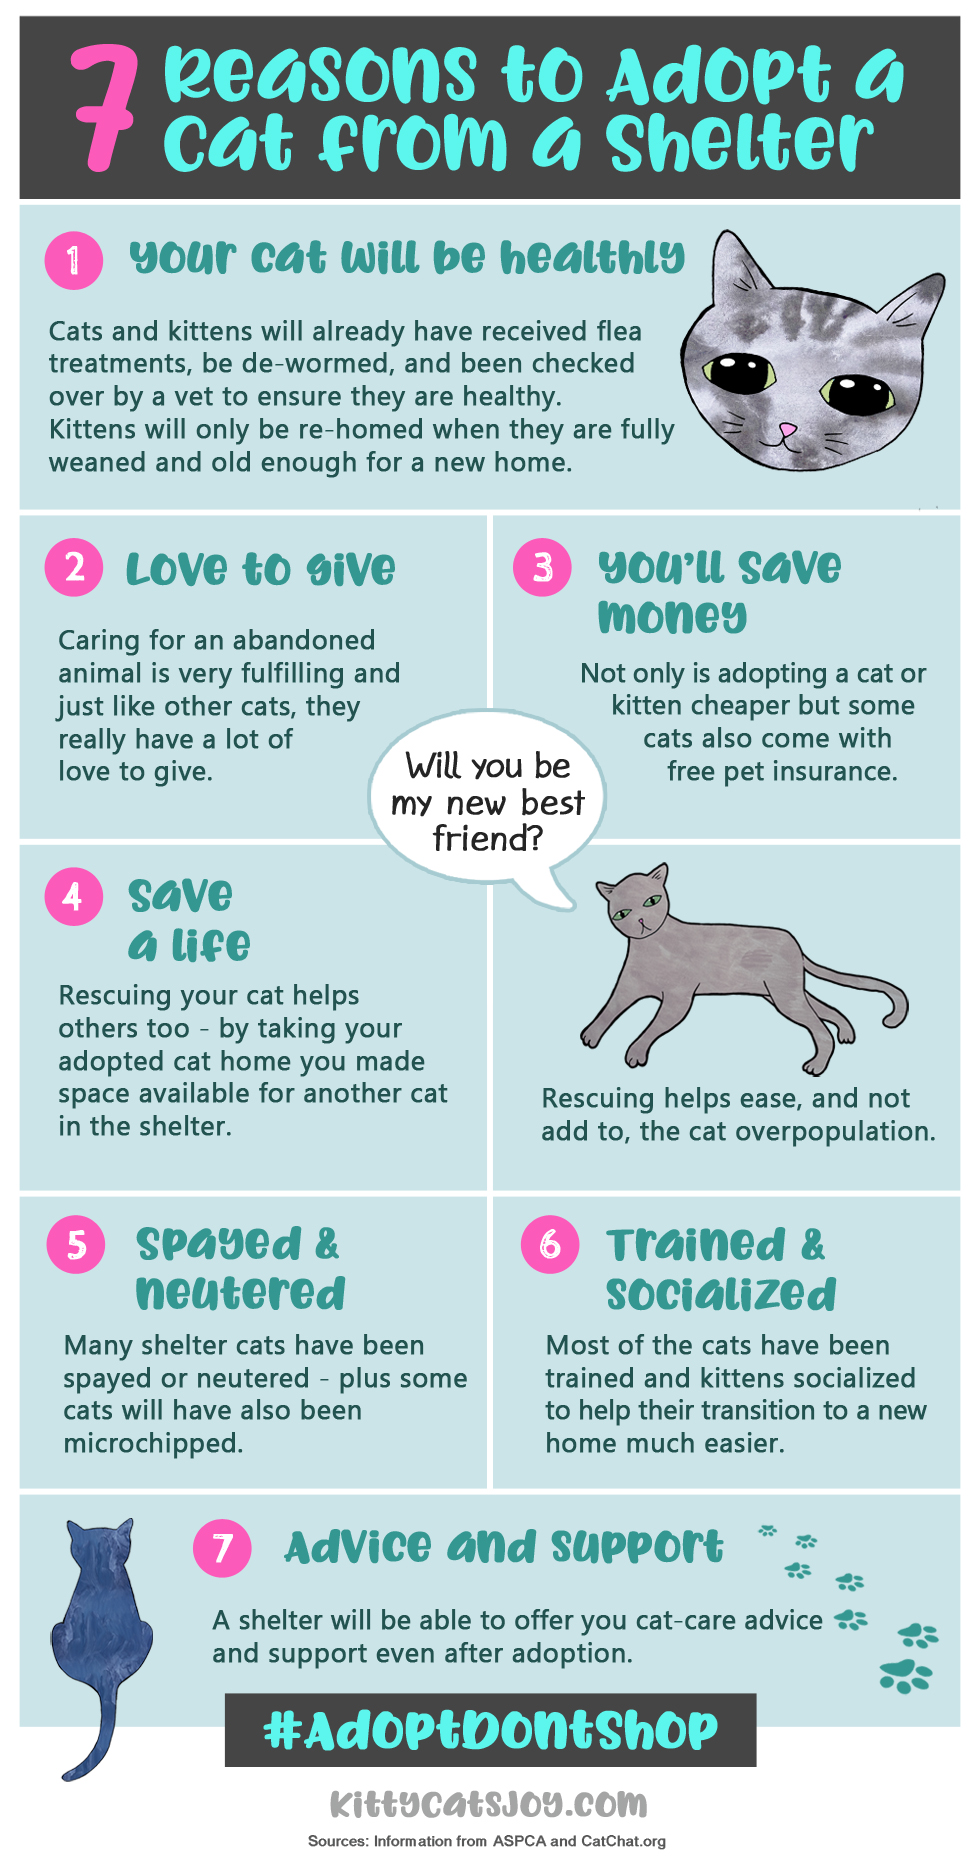 Adopt Dont Shop Shelter Cats Infographic